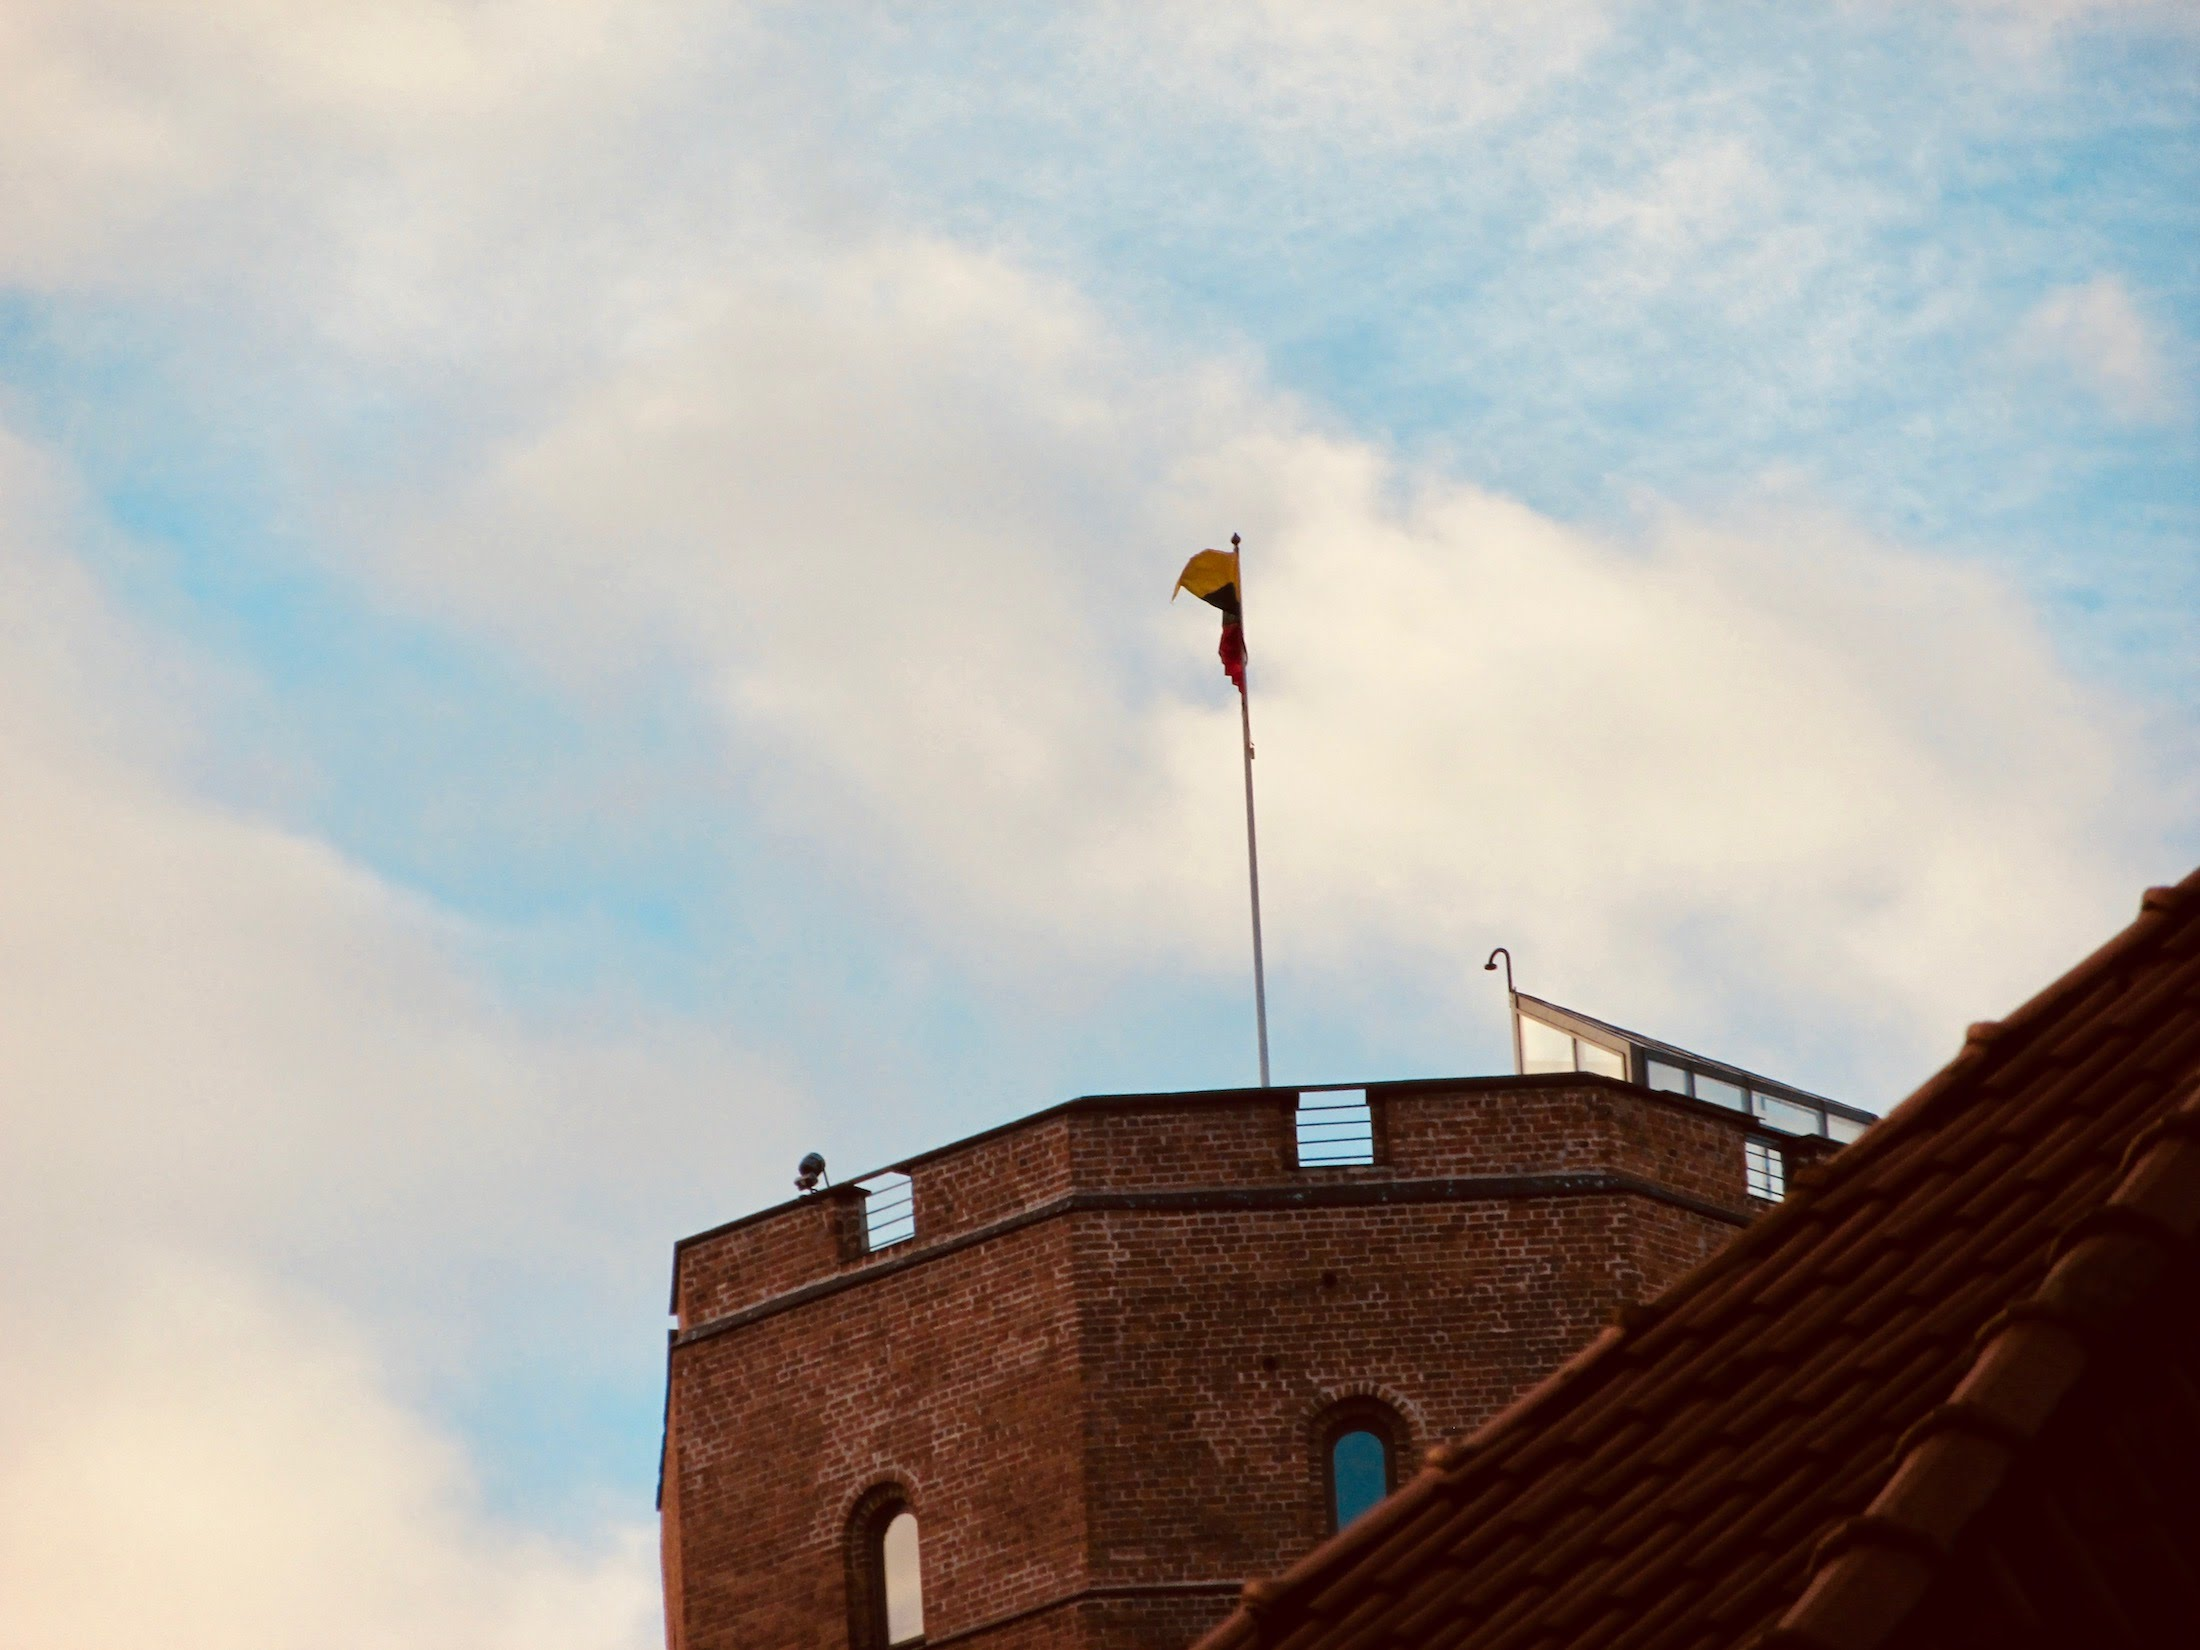 The flag of Lithuania was re-hoisted atop the tower on October 7, 1988